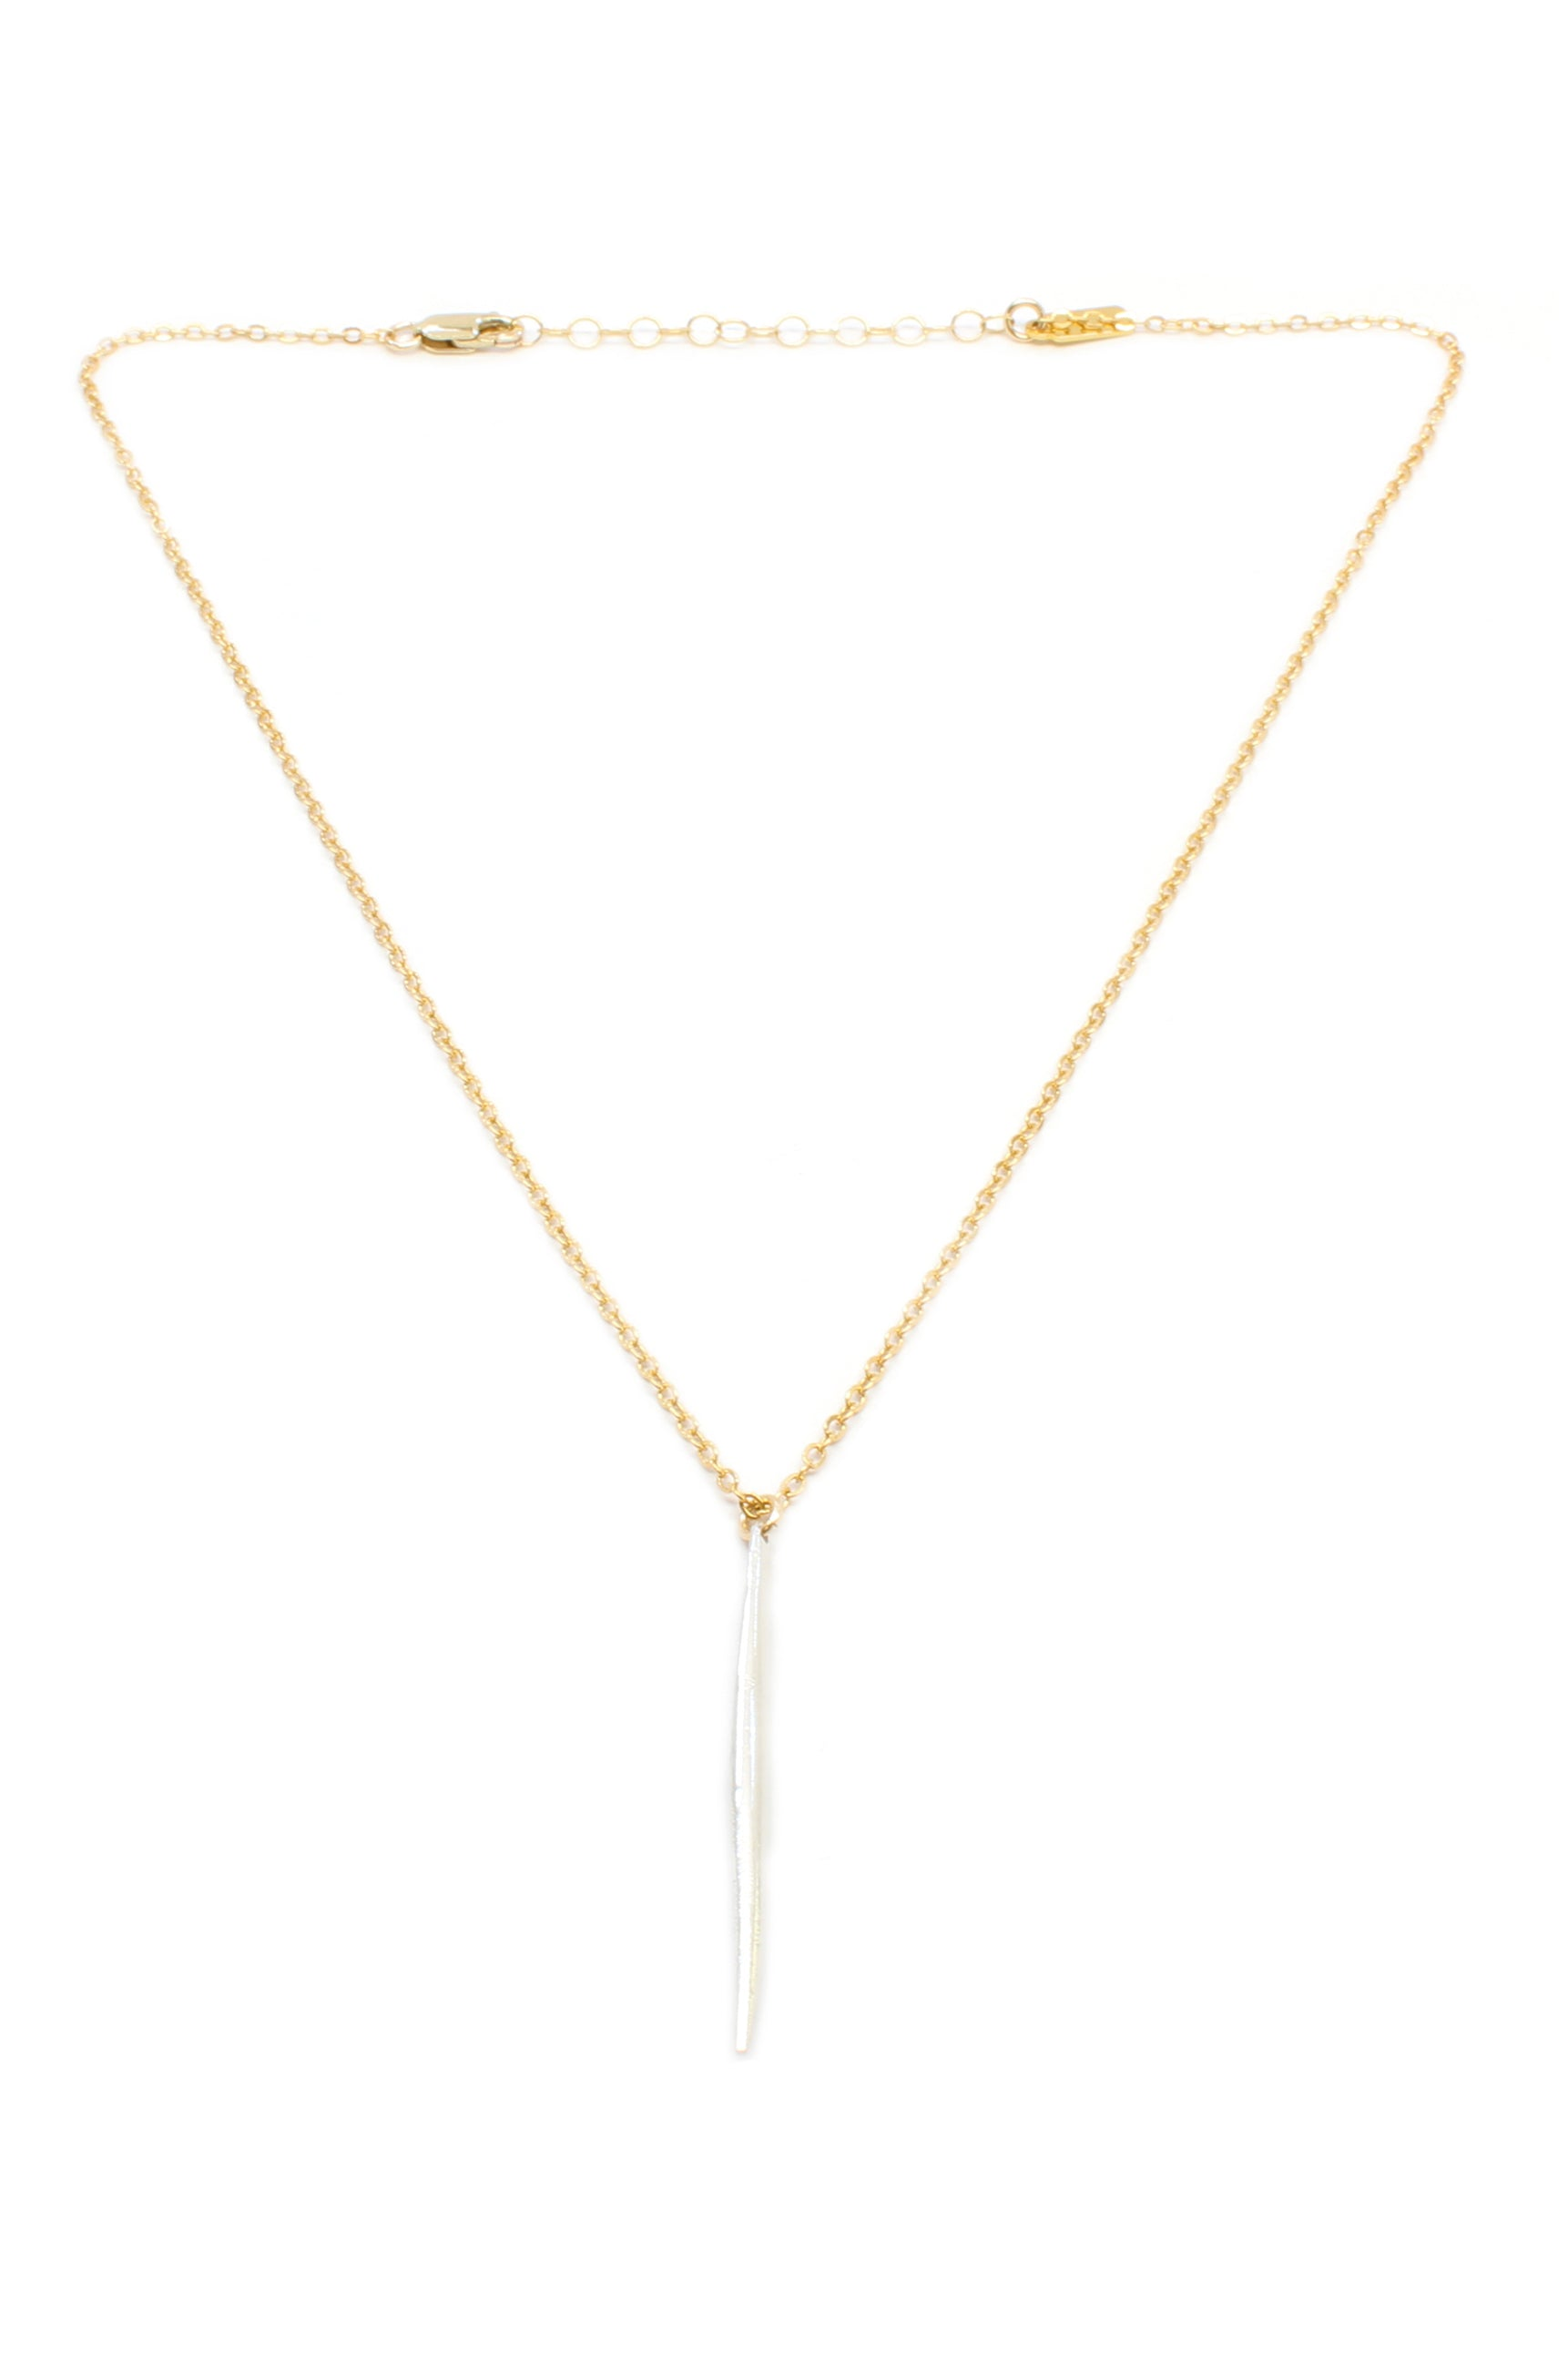 Two-Tone Needle Necklace Silver & Gold Brooke Landon Jewelry